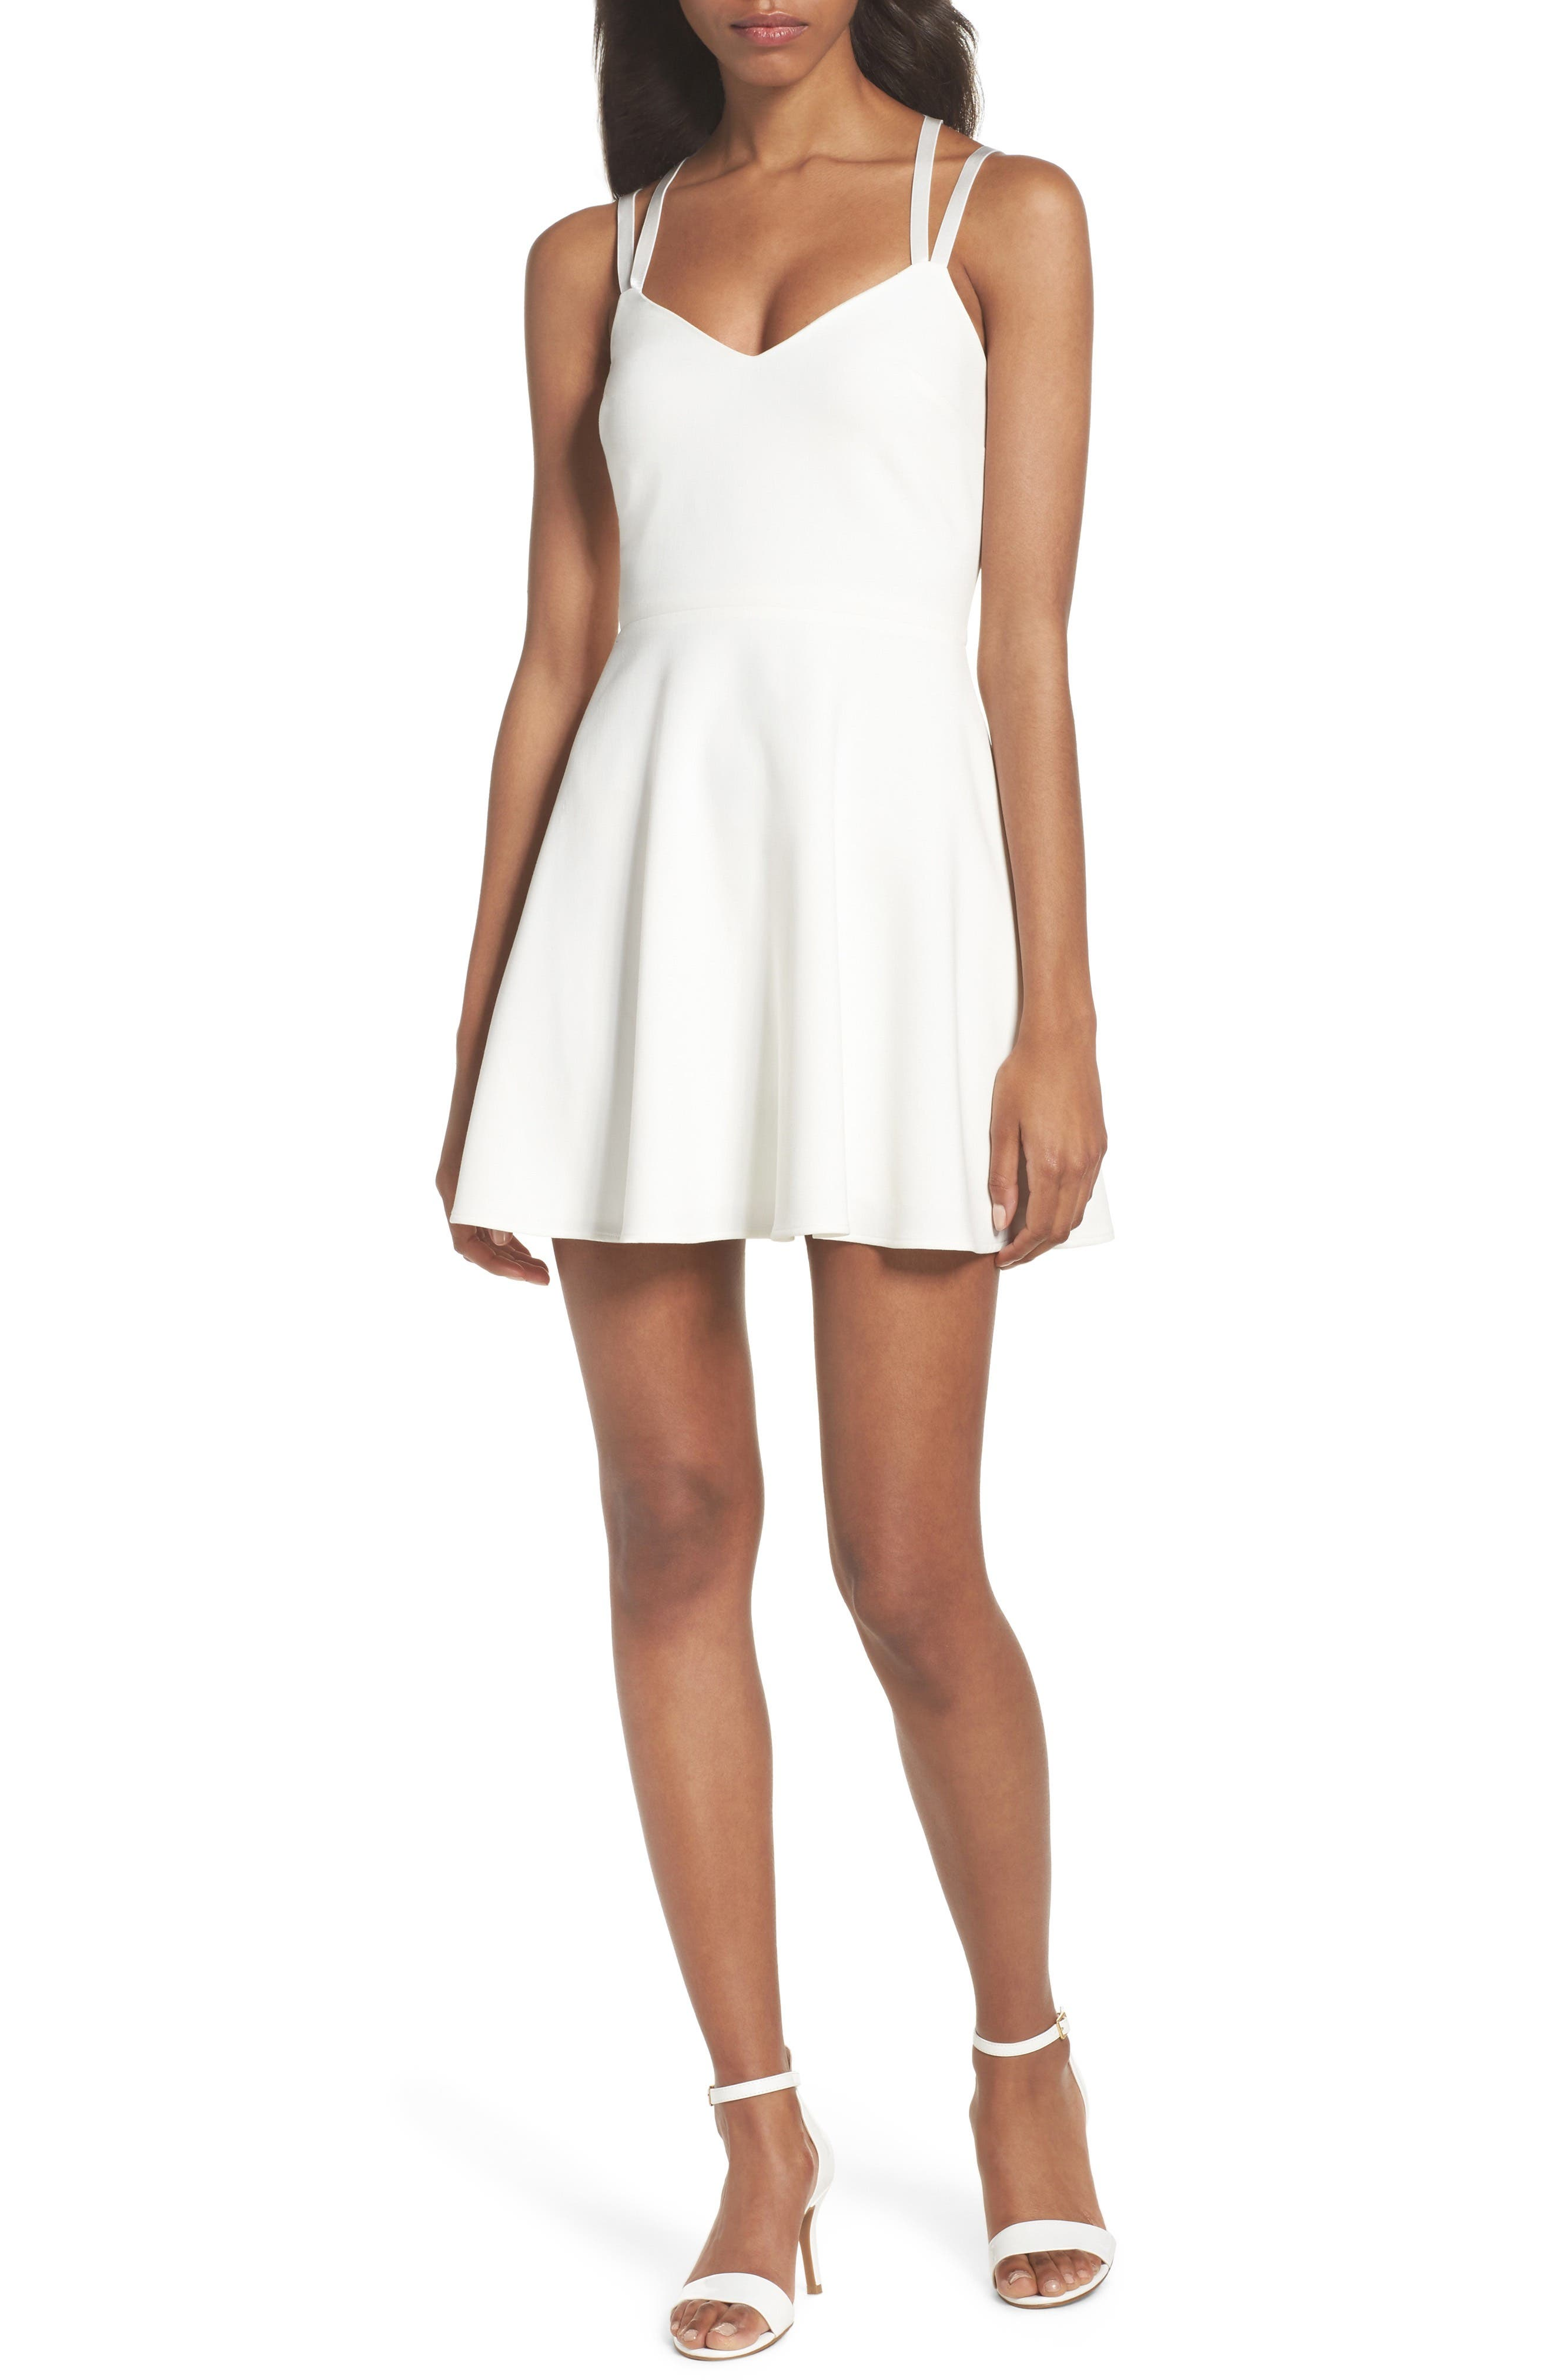 French Connection Whisper Light Fit & Flare Dress, White